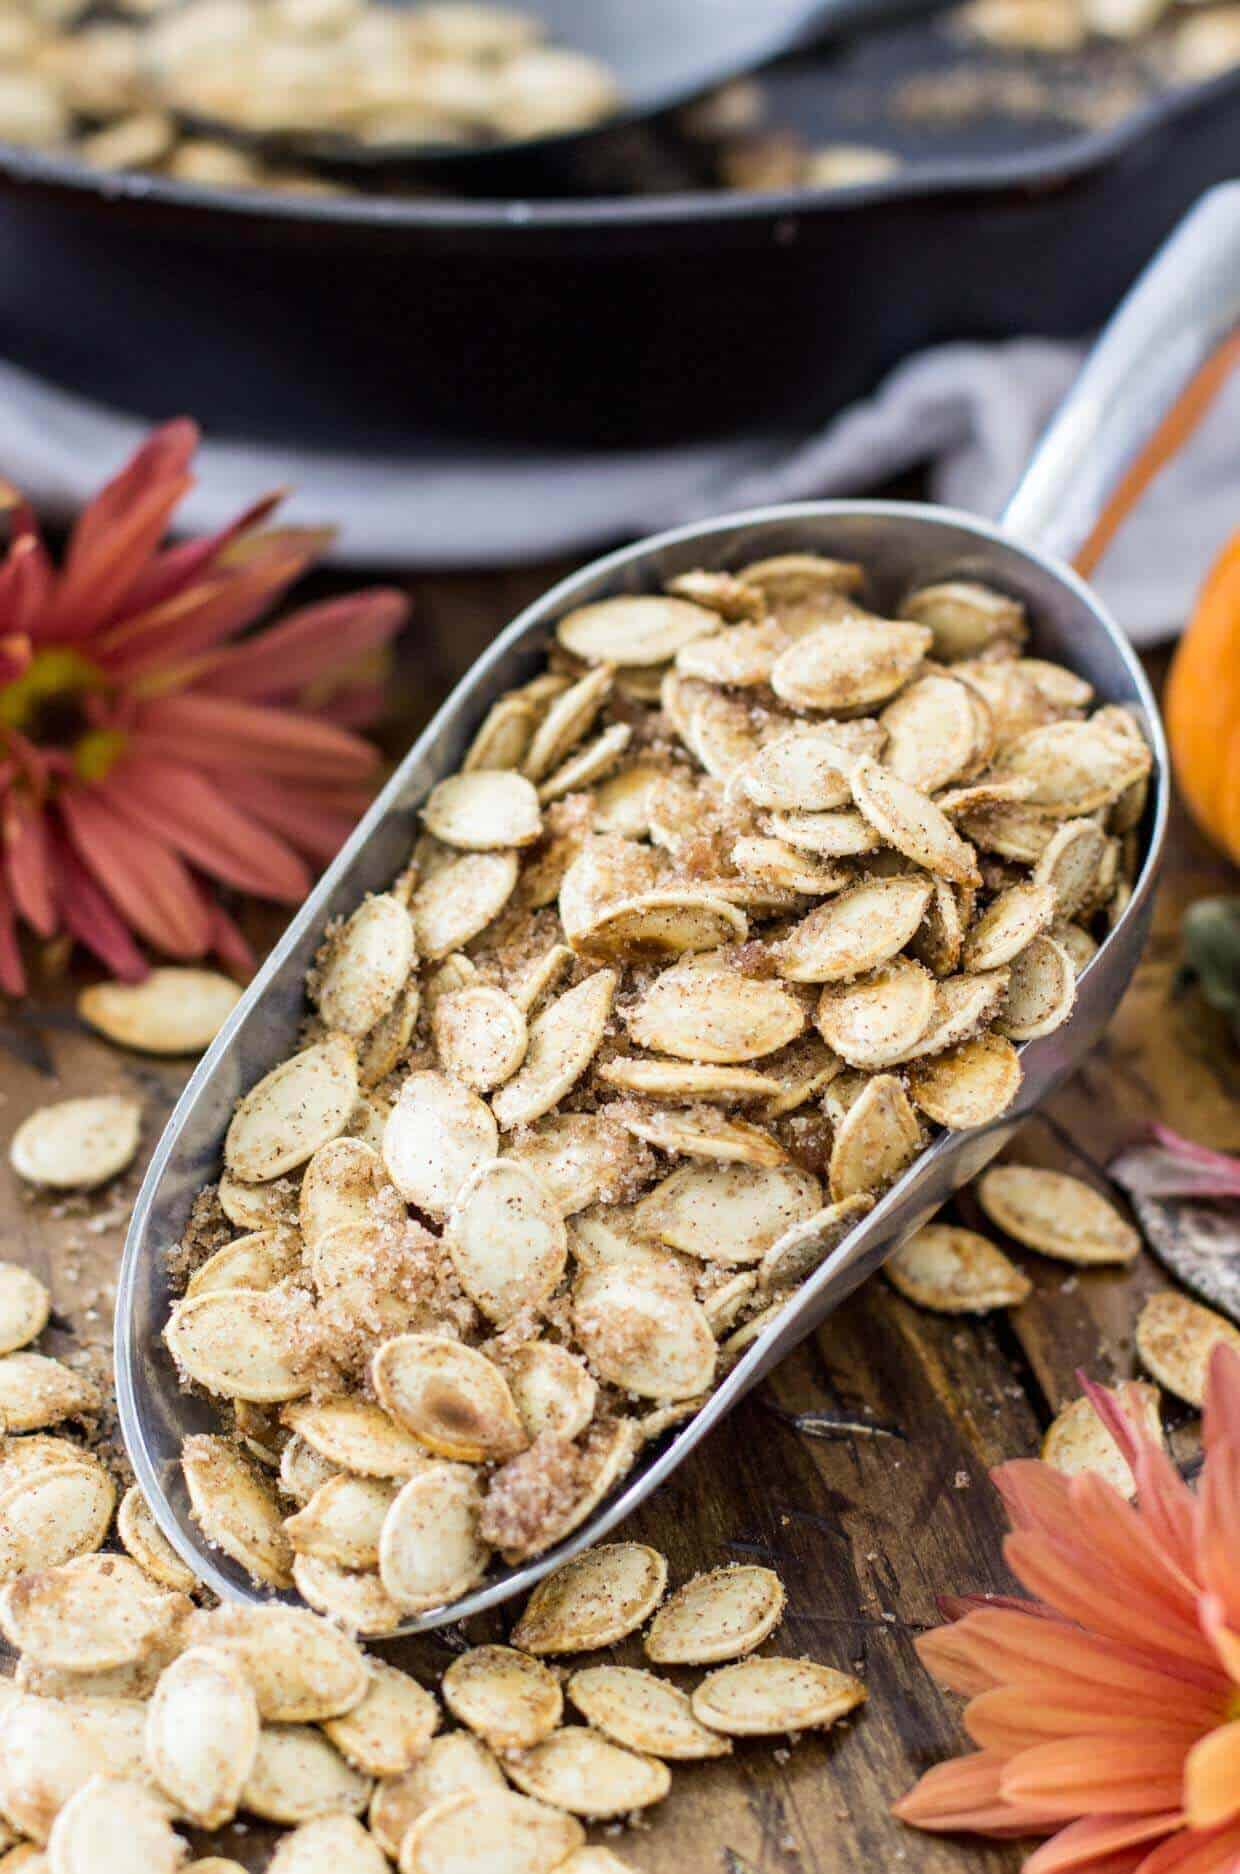 Pumpkin seeds, one of twelve top pumpkin recipes